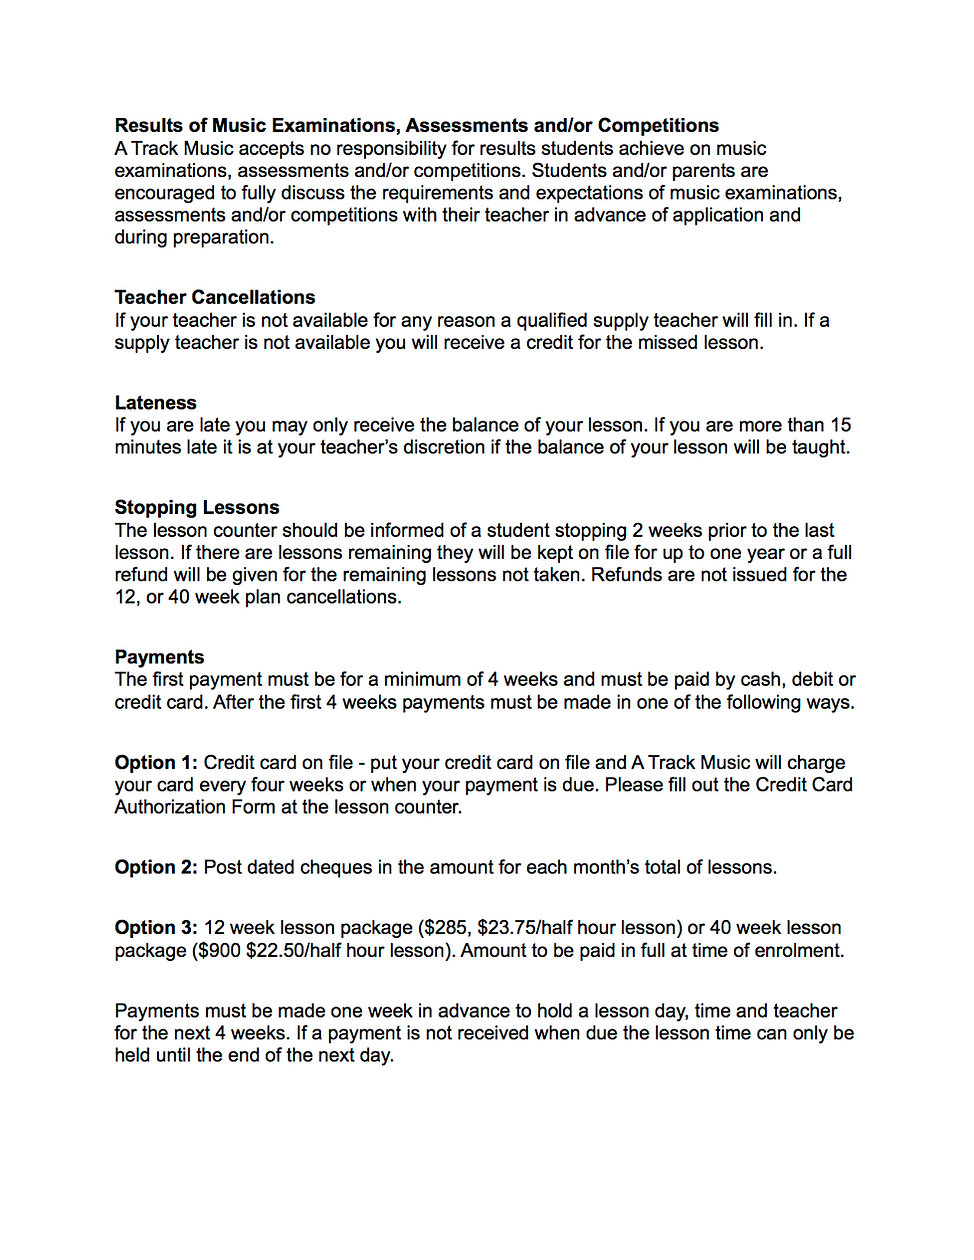 A Track Music School Policies page 2.jpg